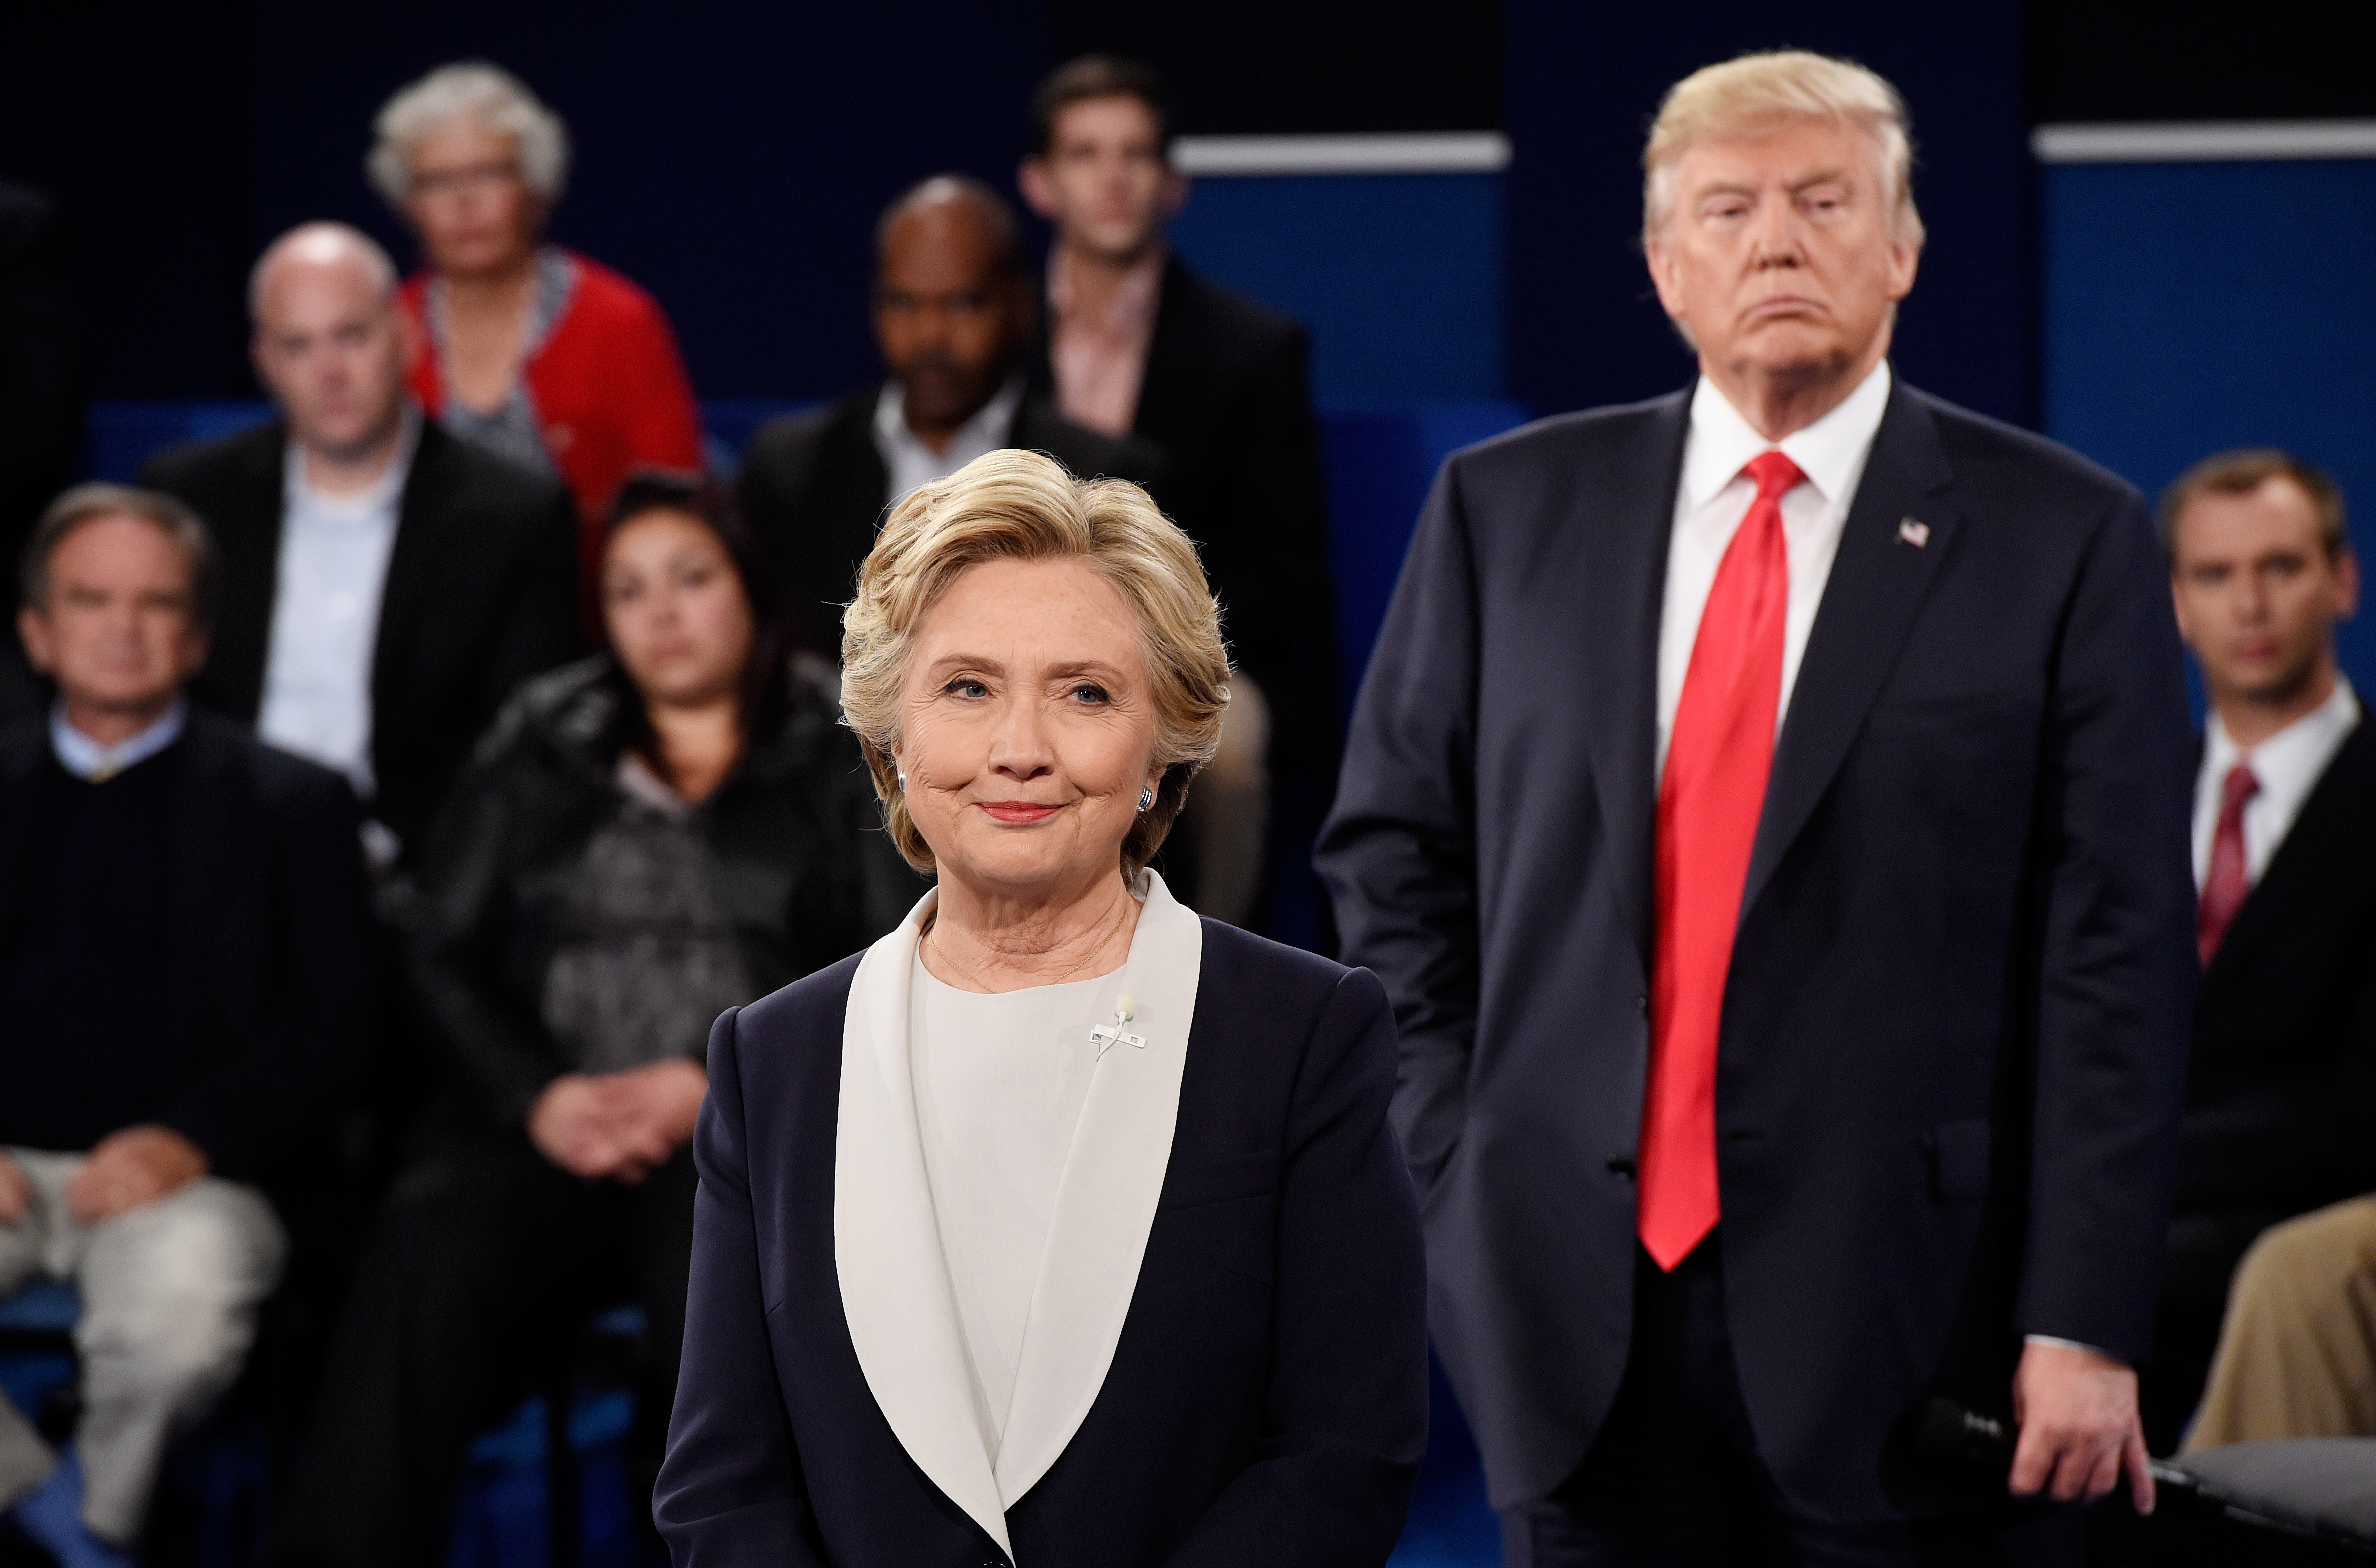 Democratic presidential nominee former Secretary of State Hillary Clinton (L) and then-Republican presidential nominee Donald Trump listen during the town hall debate at Washington University on Oct 9, 2016 in St Louis, Missouri.